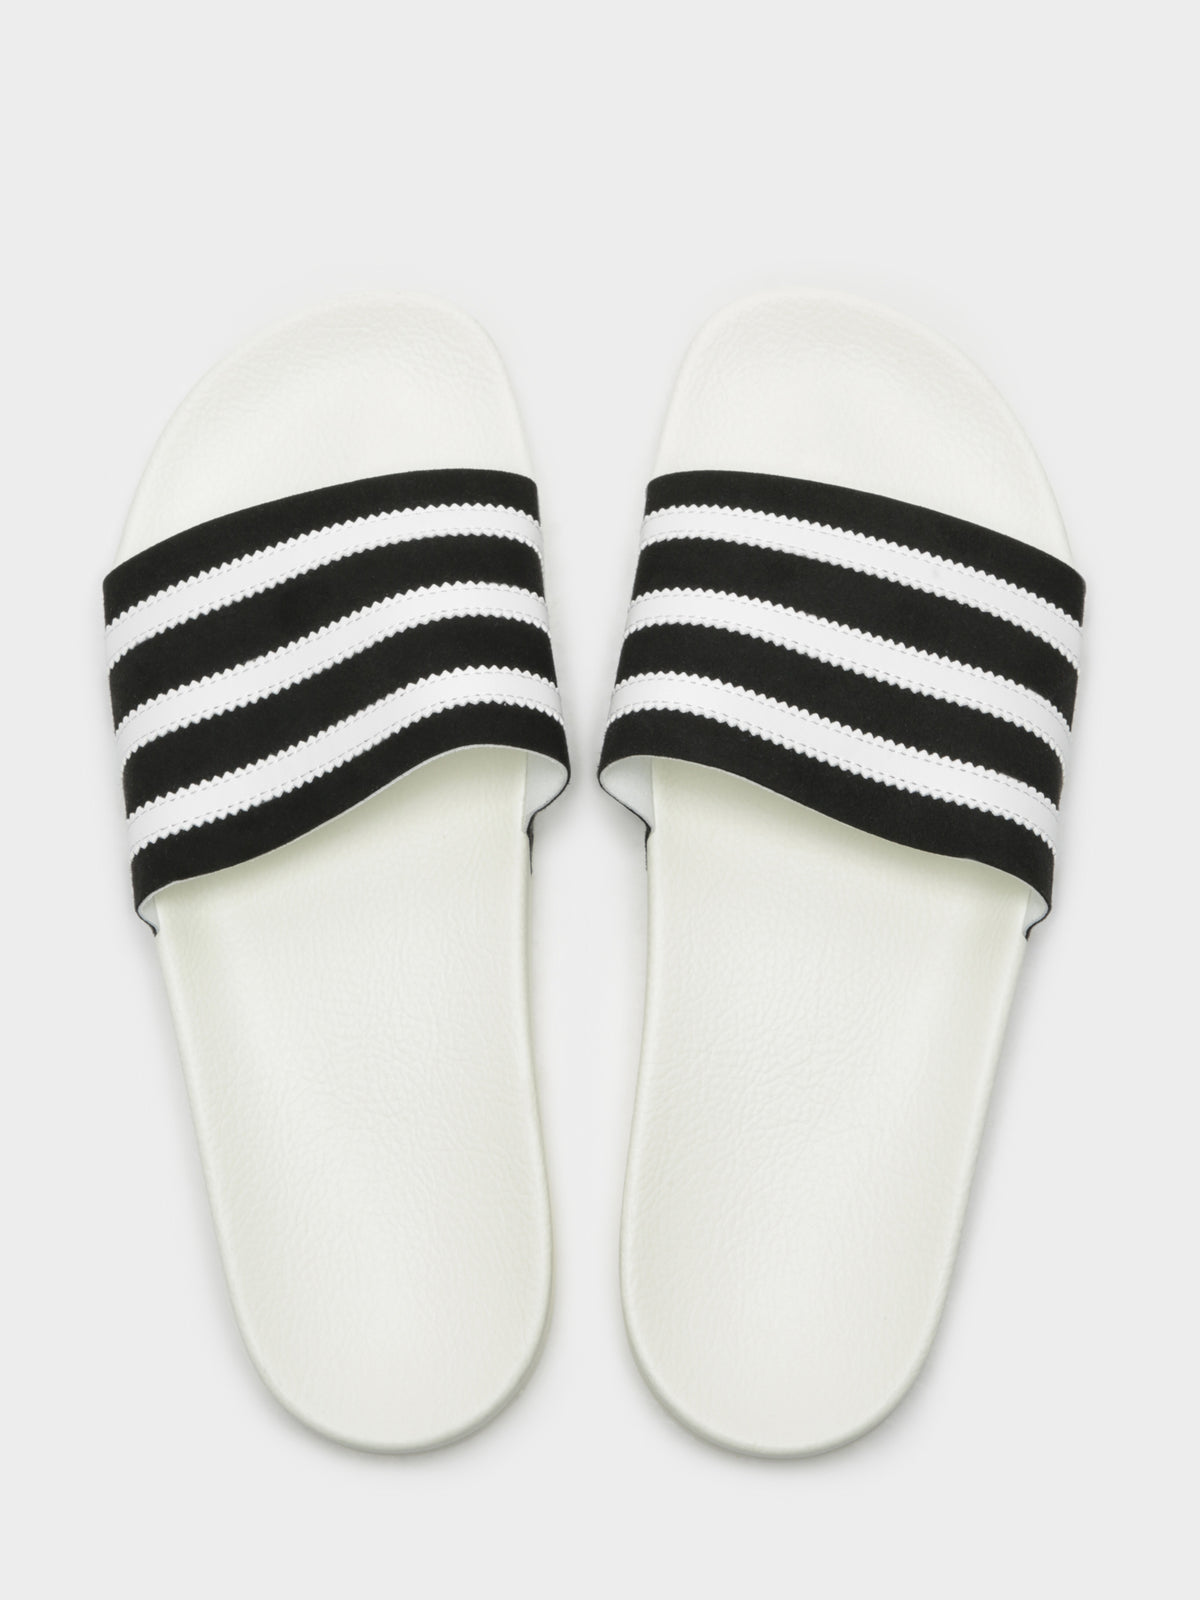 Unisex Adilette Slides in Black and White